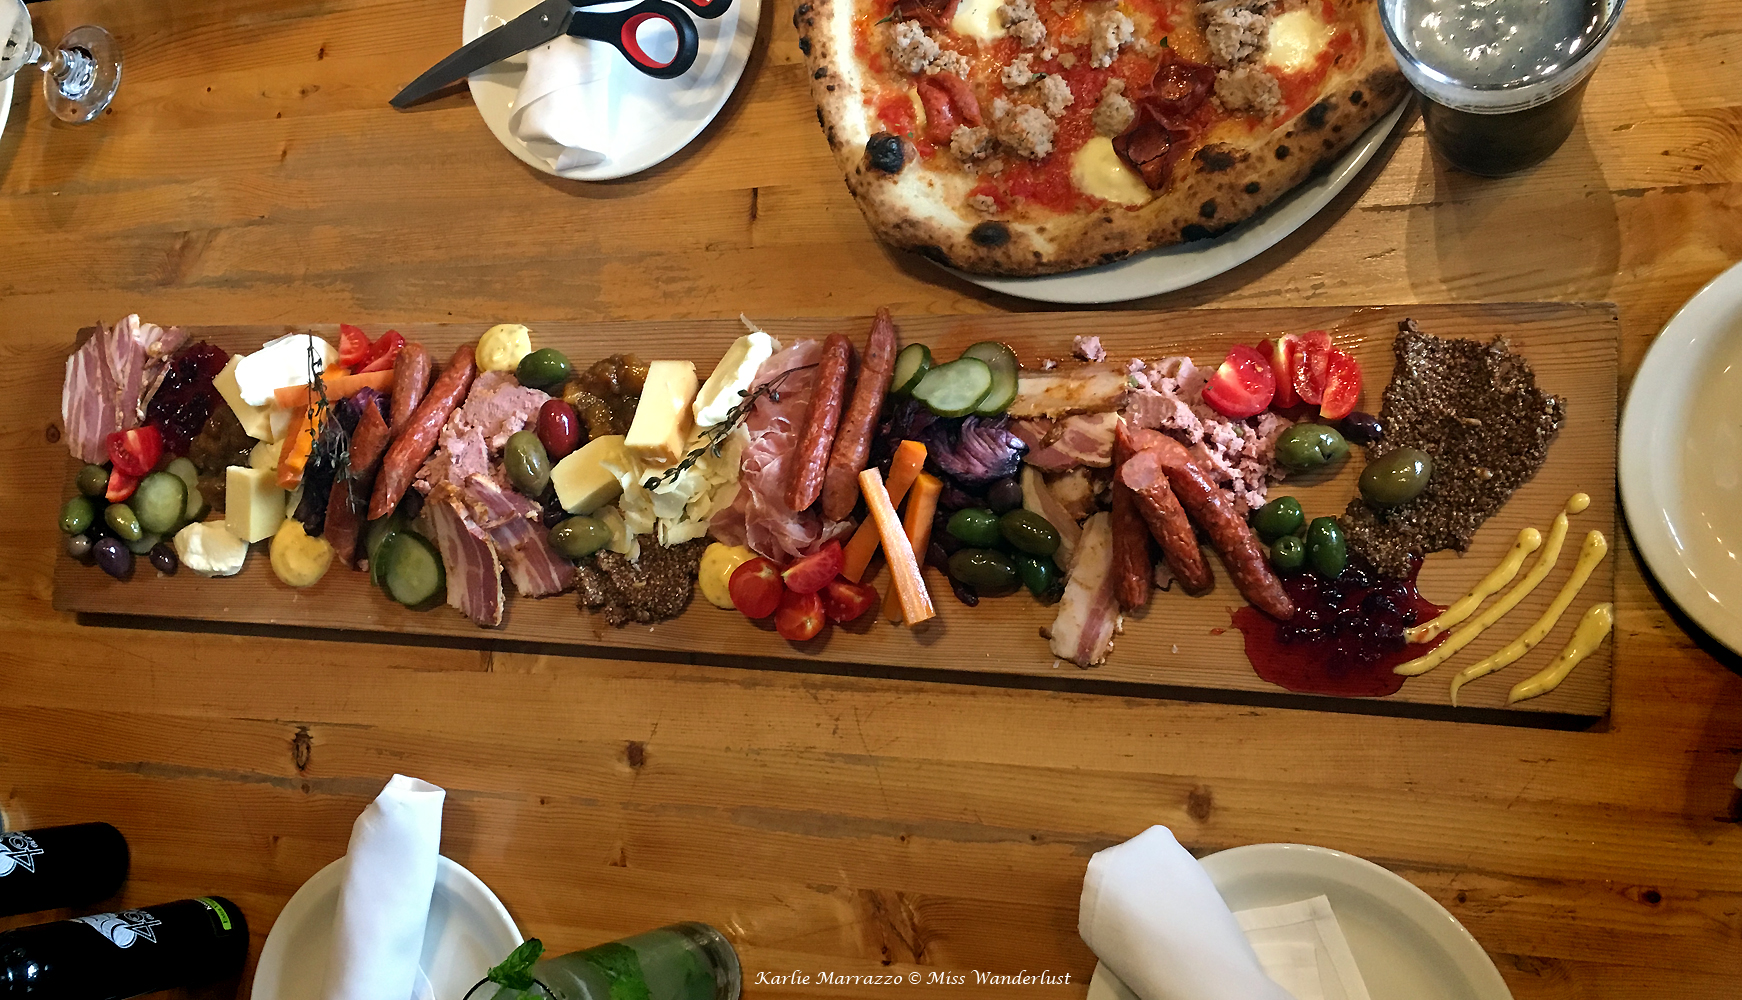 An aerial view of a charcuterie board covered with cured meats, cheeses, pickled vegatables and olives, set on a wooden table